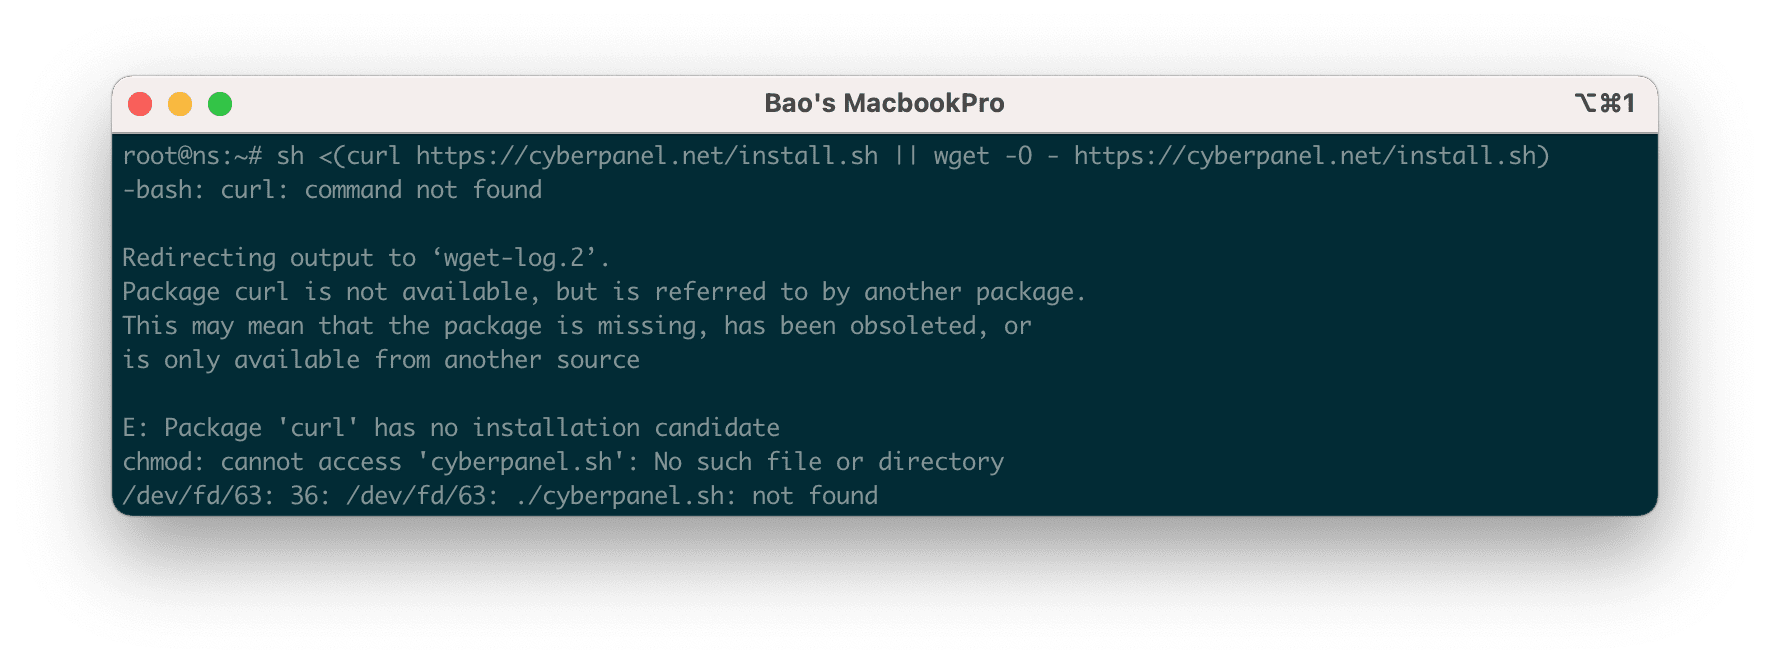 Lỗi: Package 'curl' has no installation candidate.